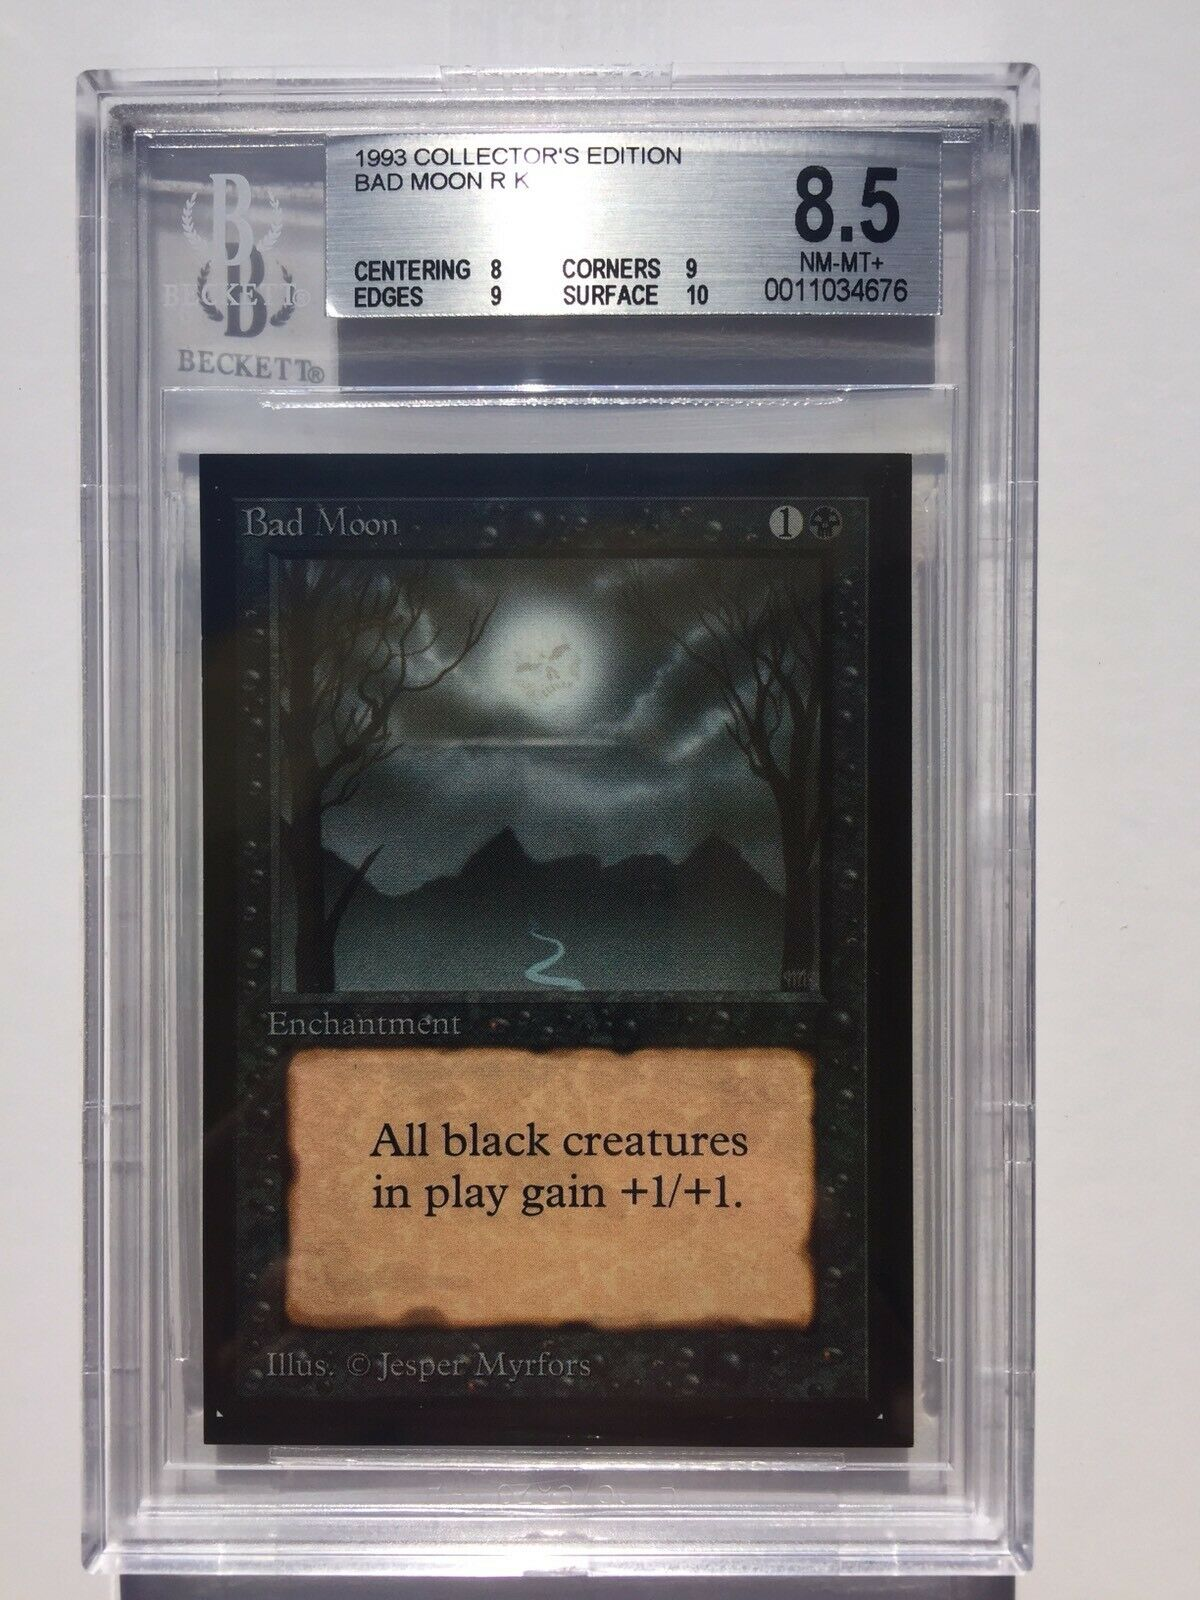 BGS 8.5   Bad Moon   MtG CE Collector's Edition   NM - Mint + [8, 9, 9, 10]